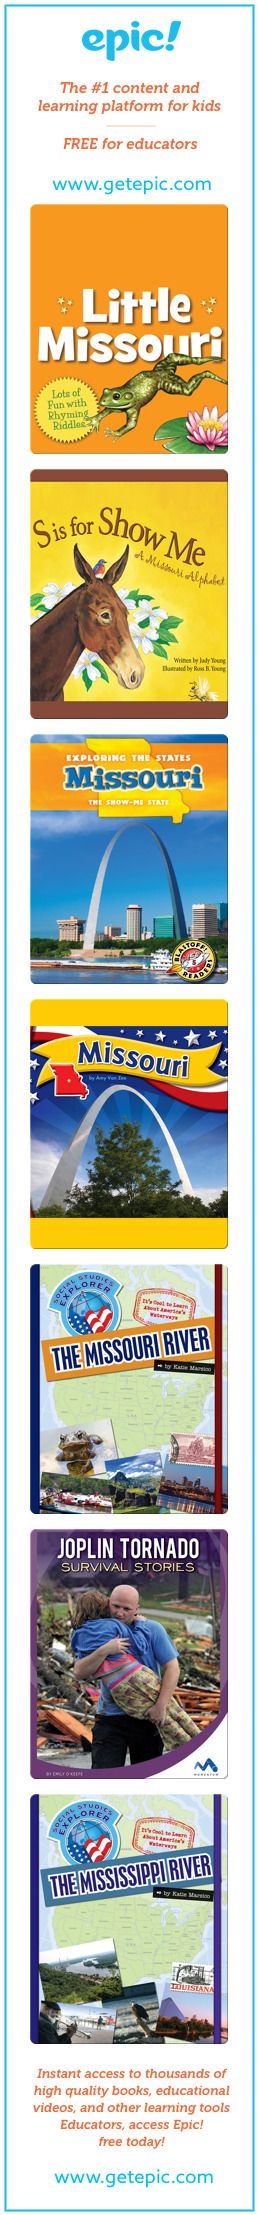 Missouri - Titles in this collection: Little Missouri, S is for Show Me: A Missouri Alphabet, Exploring the States: Missouri, Missouri, The Missouri River...